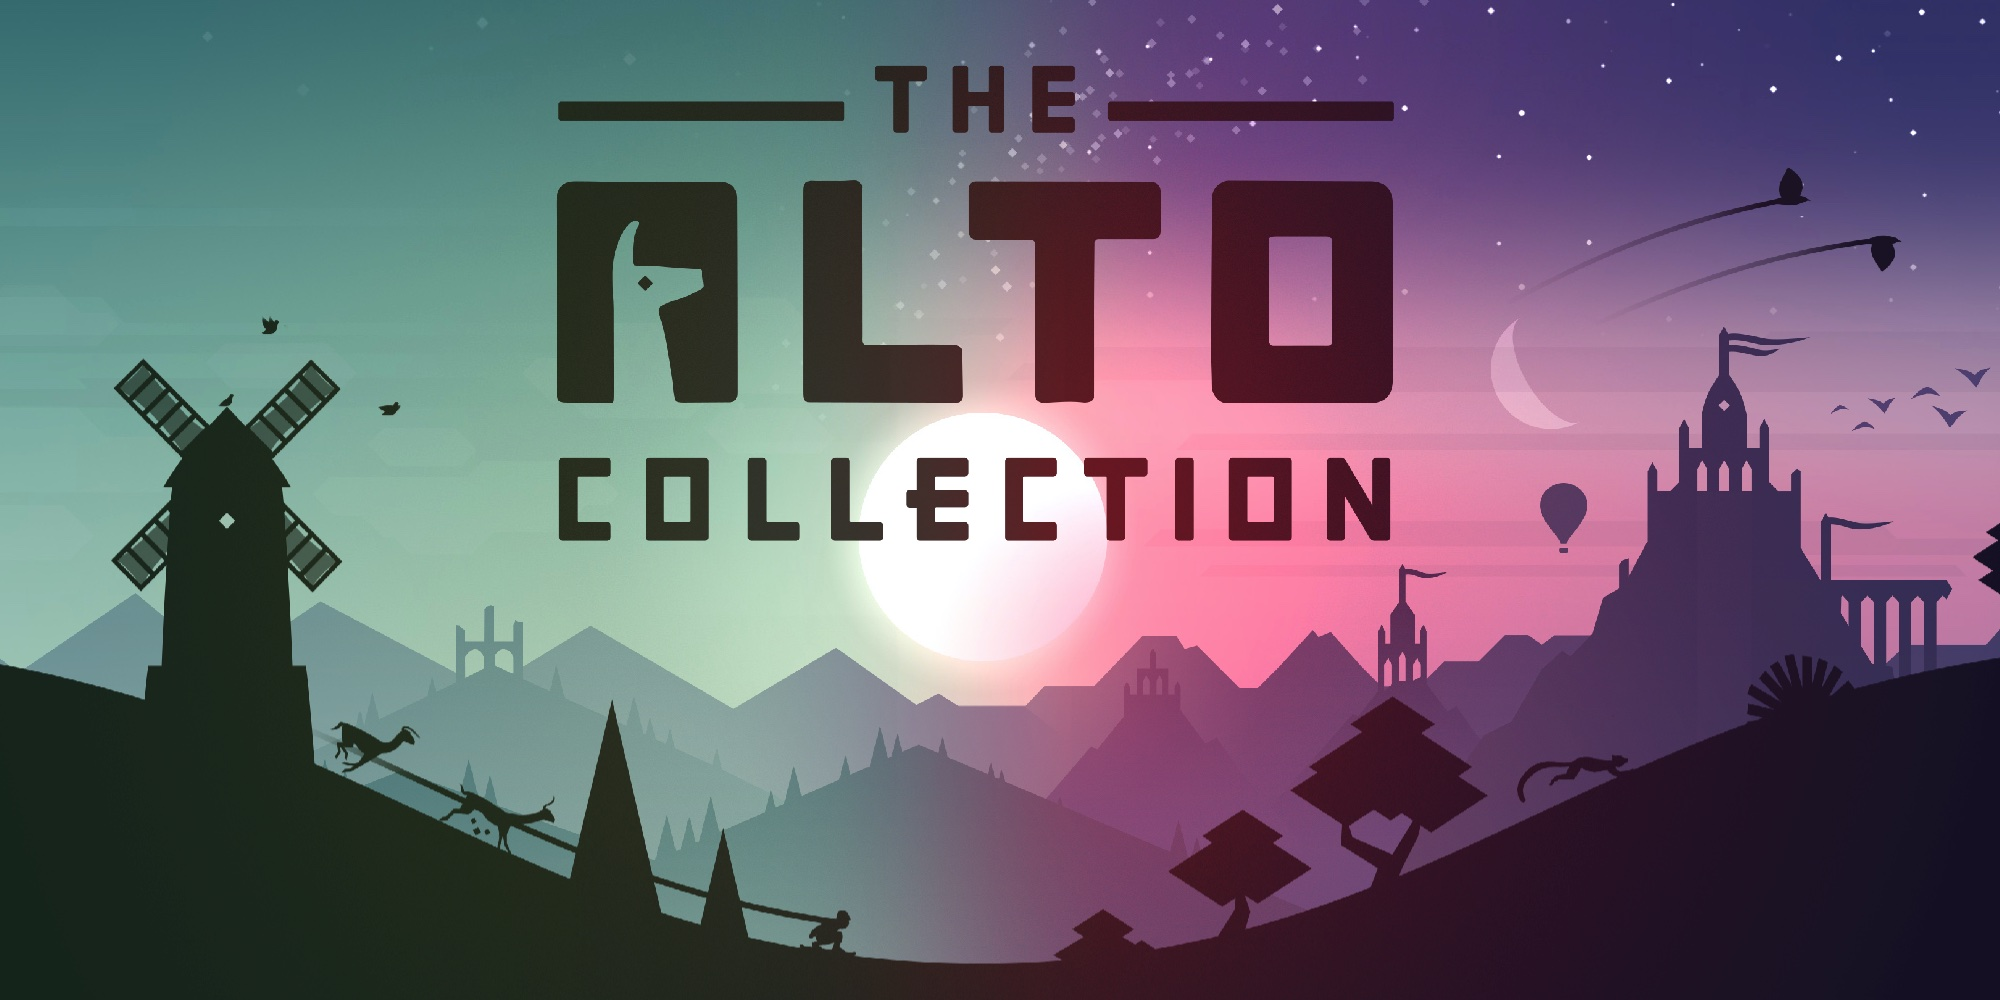 Alto's Adventure and Odyssey launch on Switch, PS4, and PC with new collection - 9to5Toys